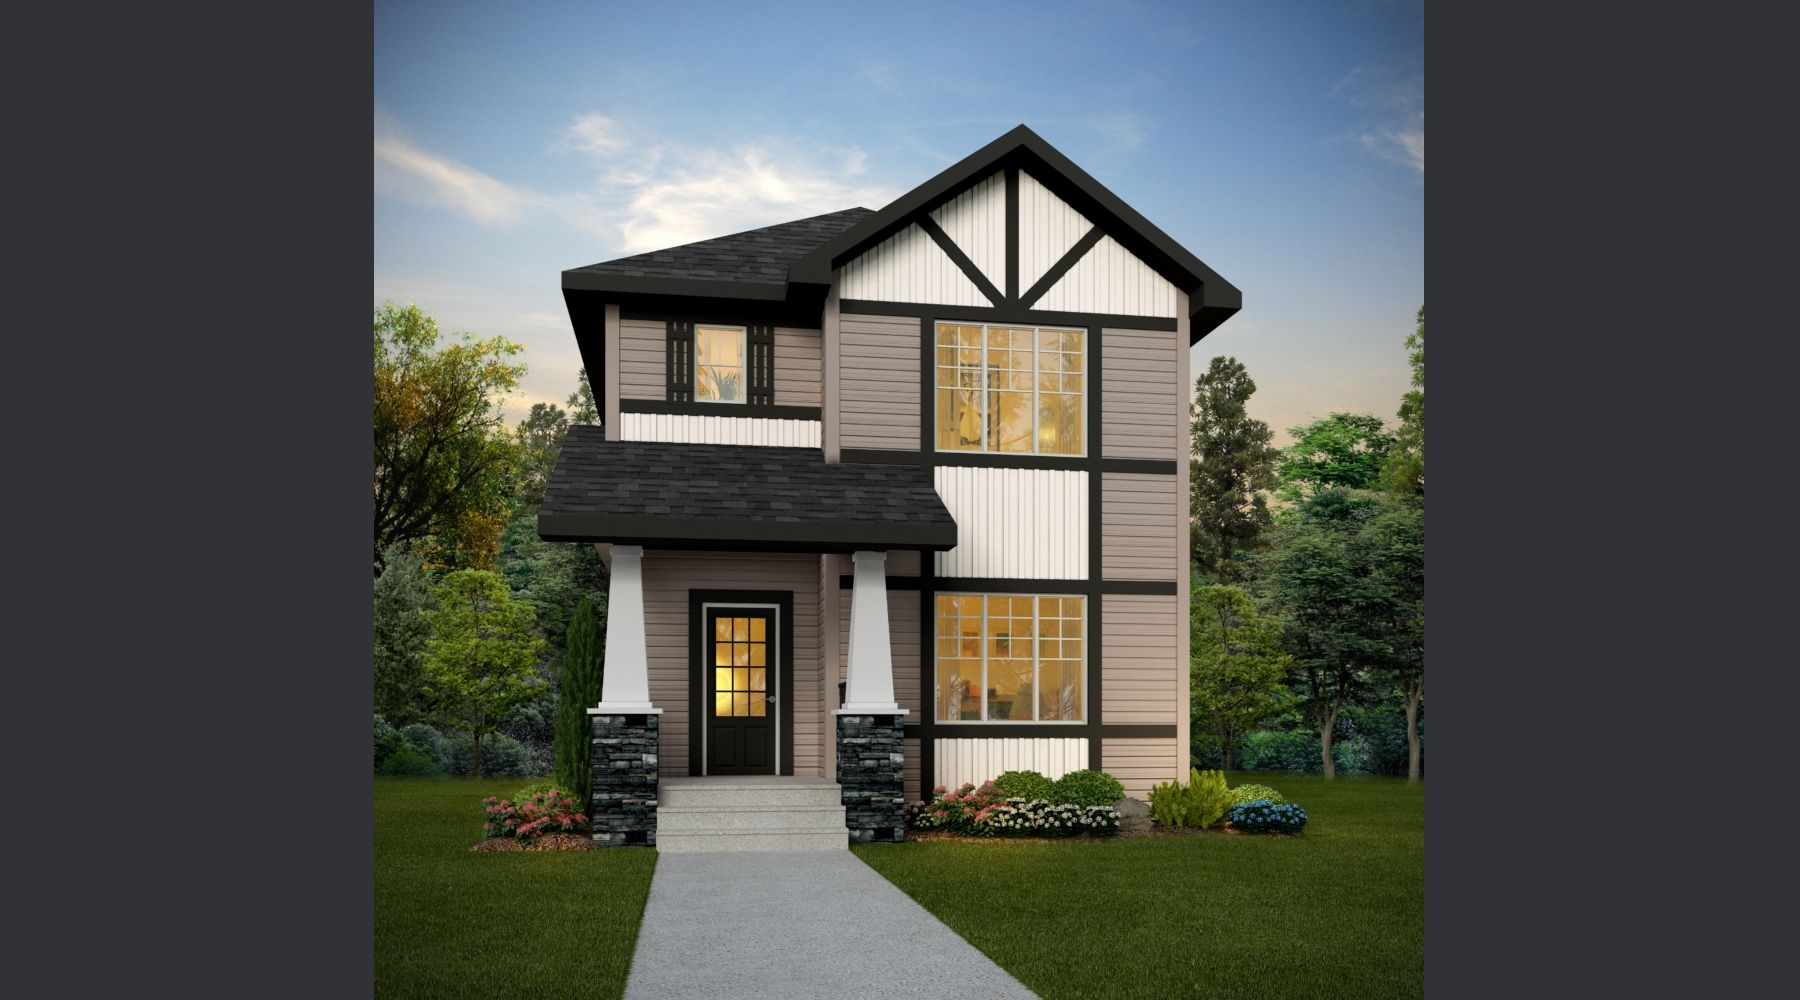 Eastwood 1352 sq ft 3 bed 2.5 bath Home Style Laned